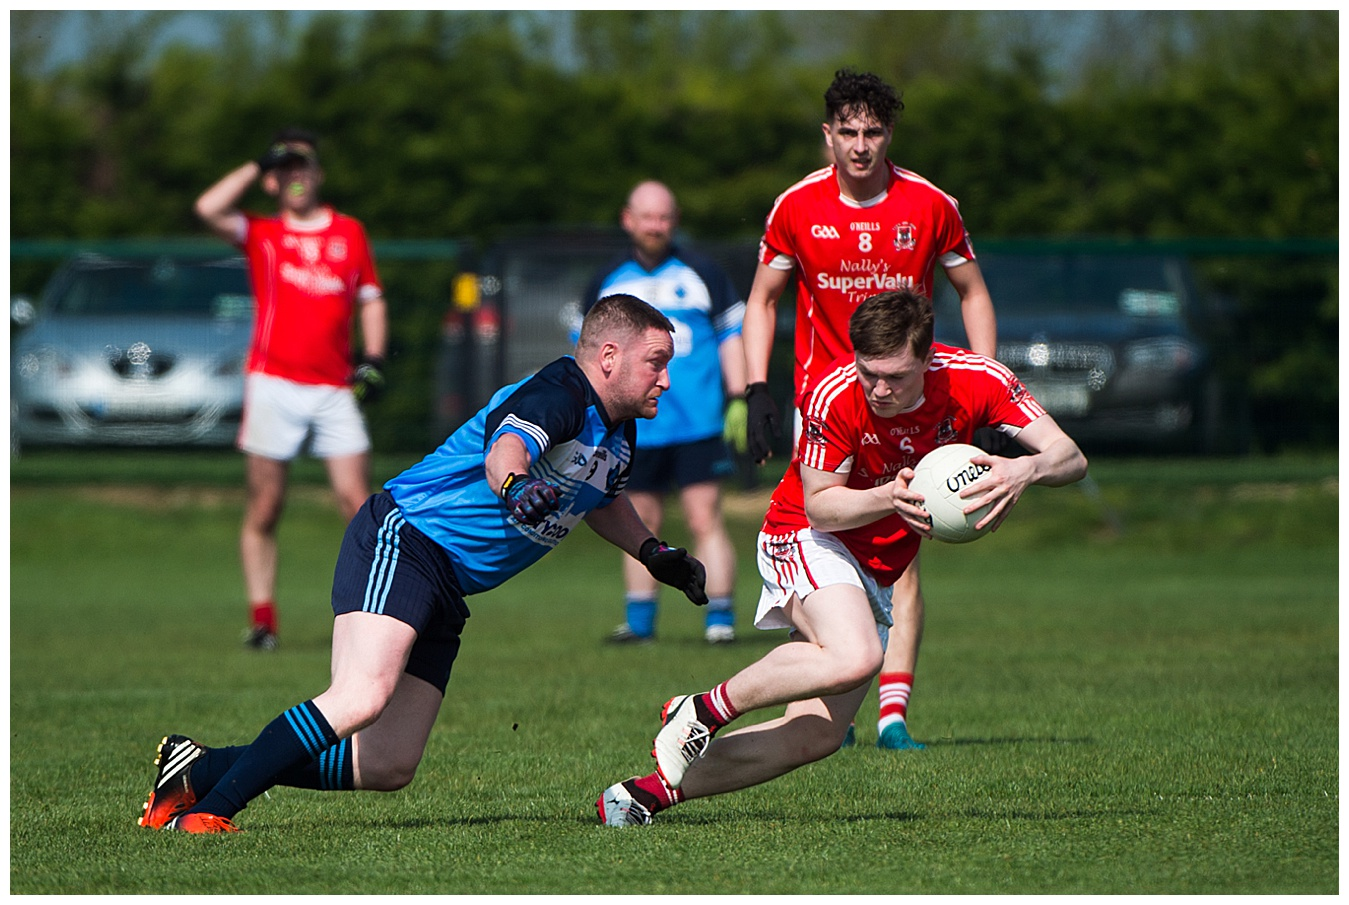 Cilles Vs Trim (Junior D – Championship) 21.04.2019